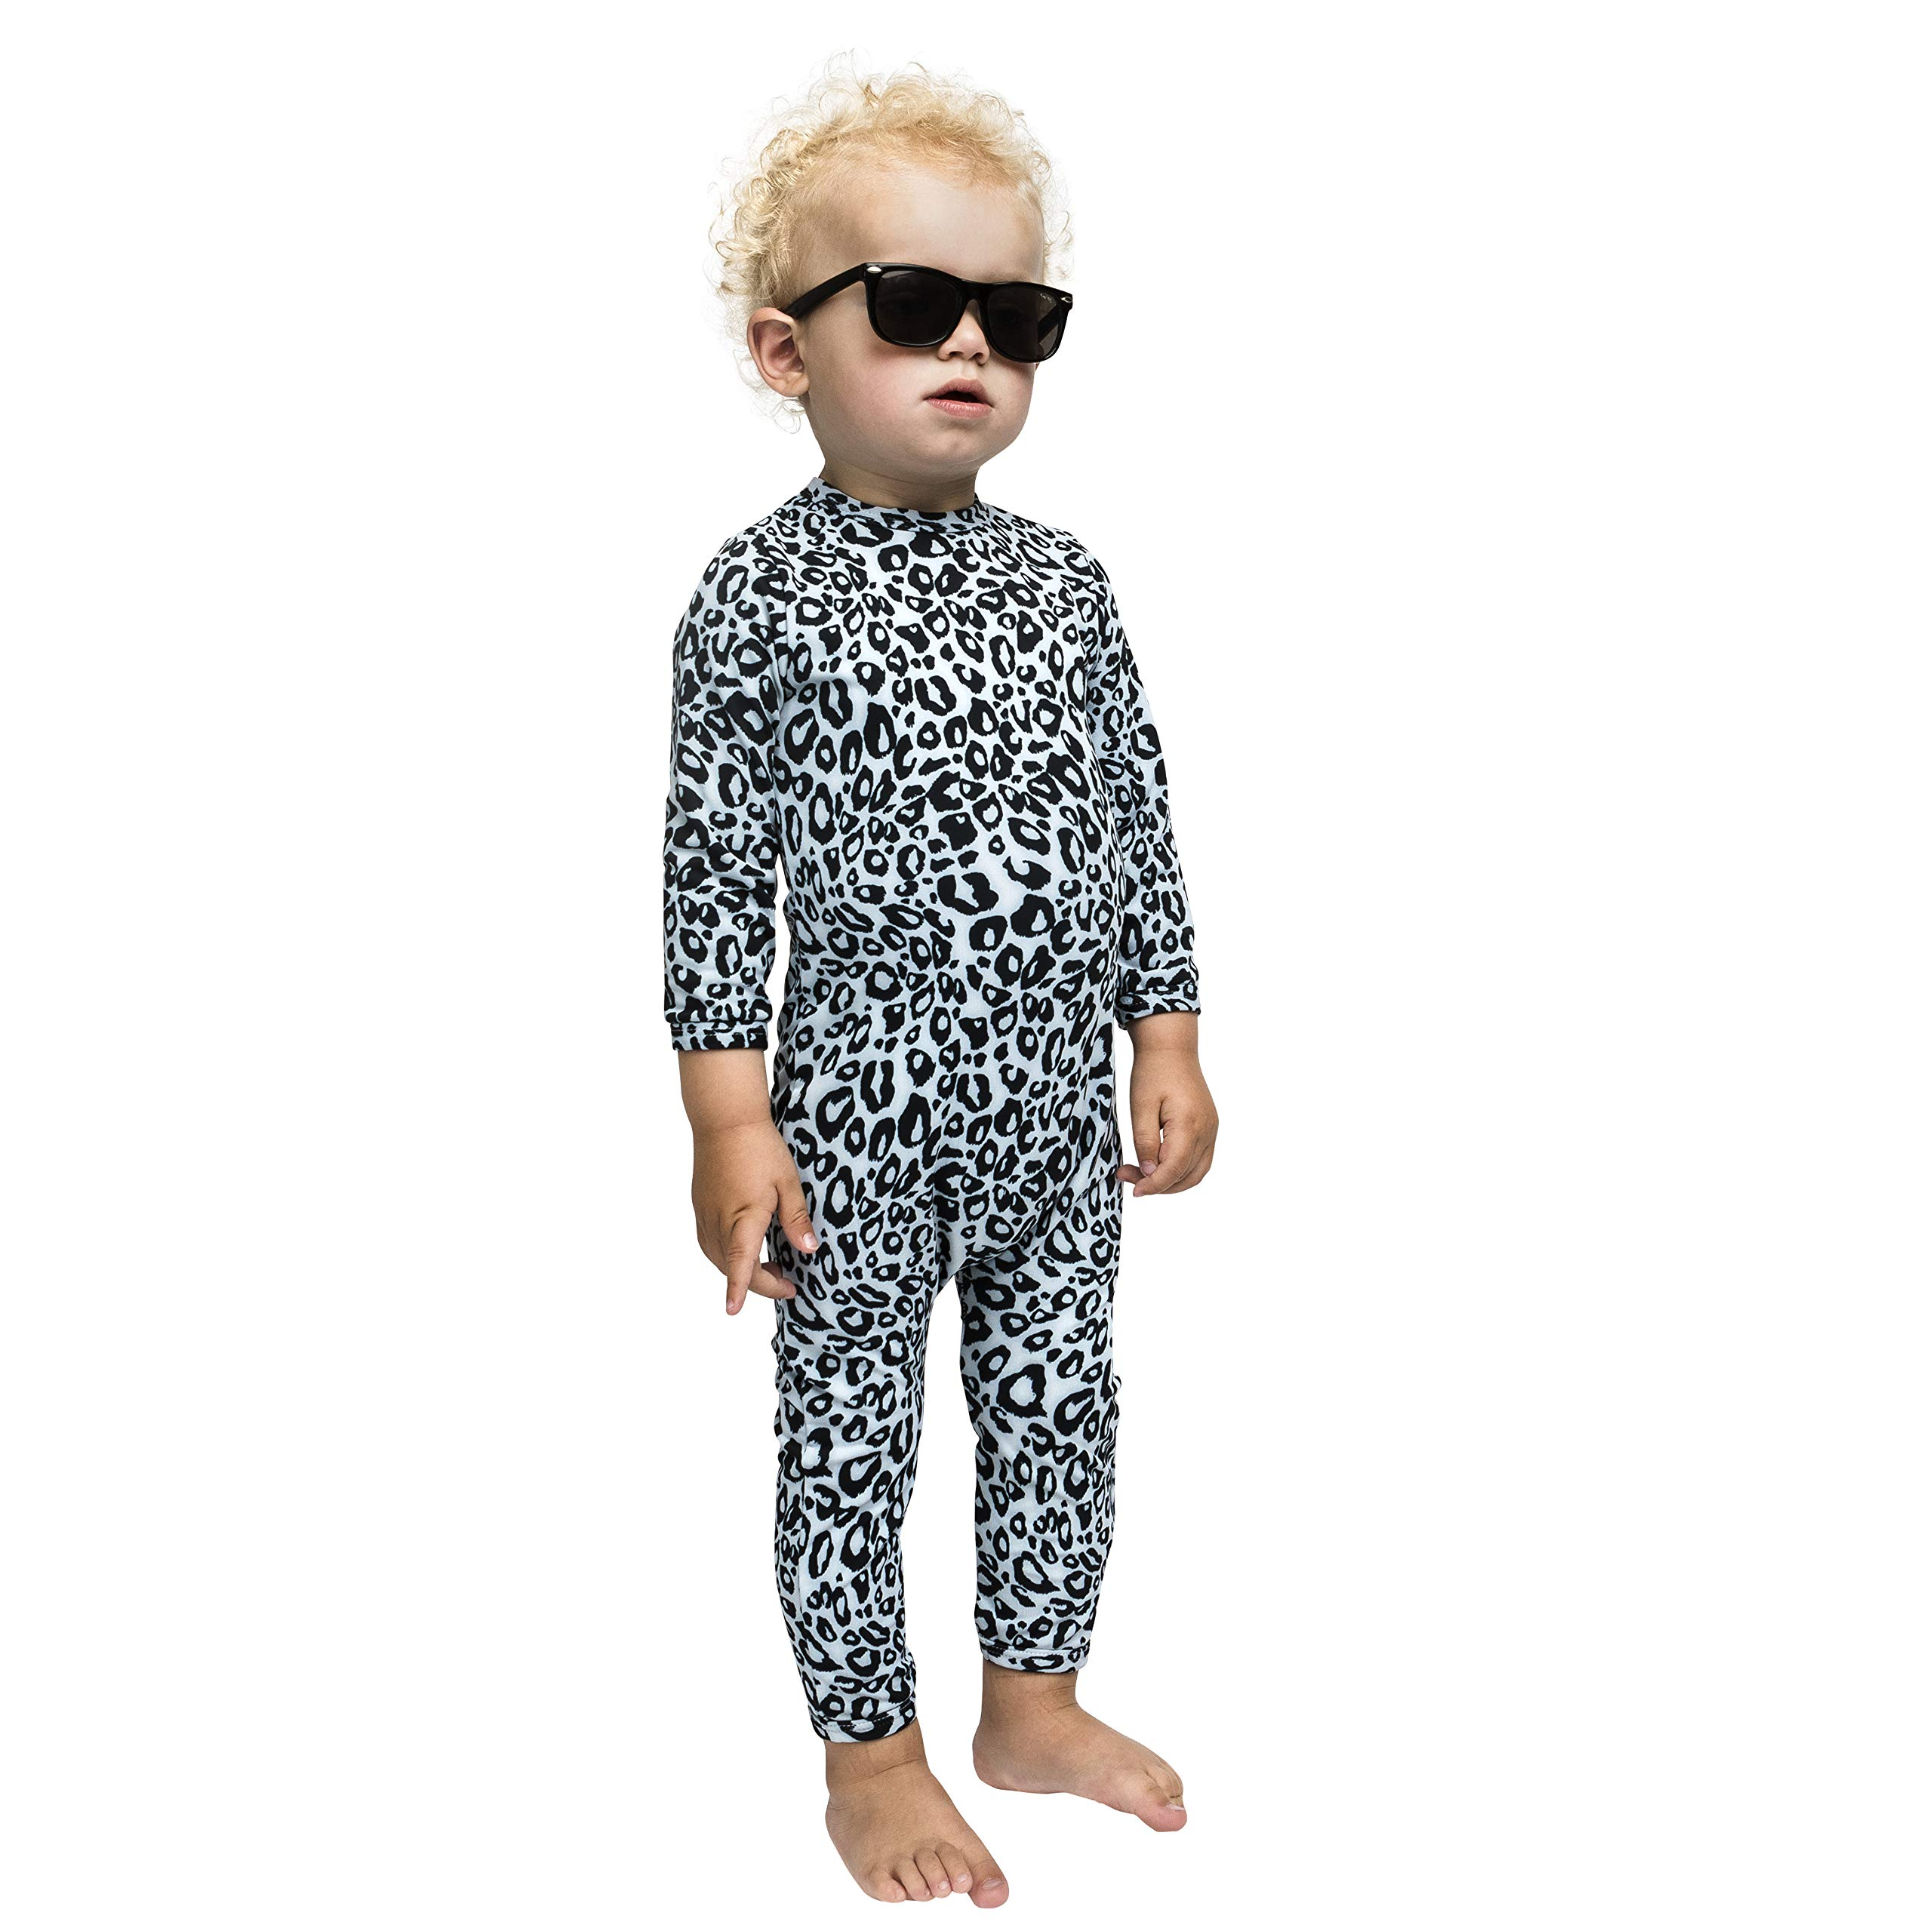 The Tiny Universe UV Protection Sunsuit Rash Guard, Long Sleeve - Unisex Baby Boys and Girls, Snow Leopard, SPF 50+ Swimsuit (Snow Leopard, 6-12 Months (80)) by The Tiny Universe